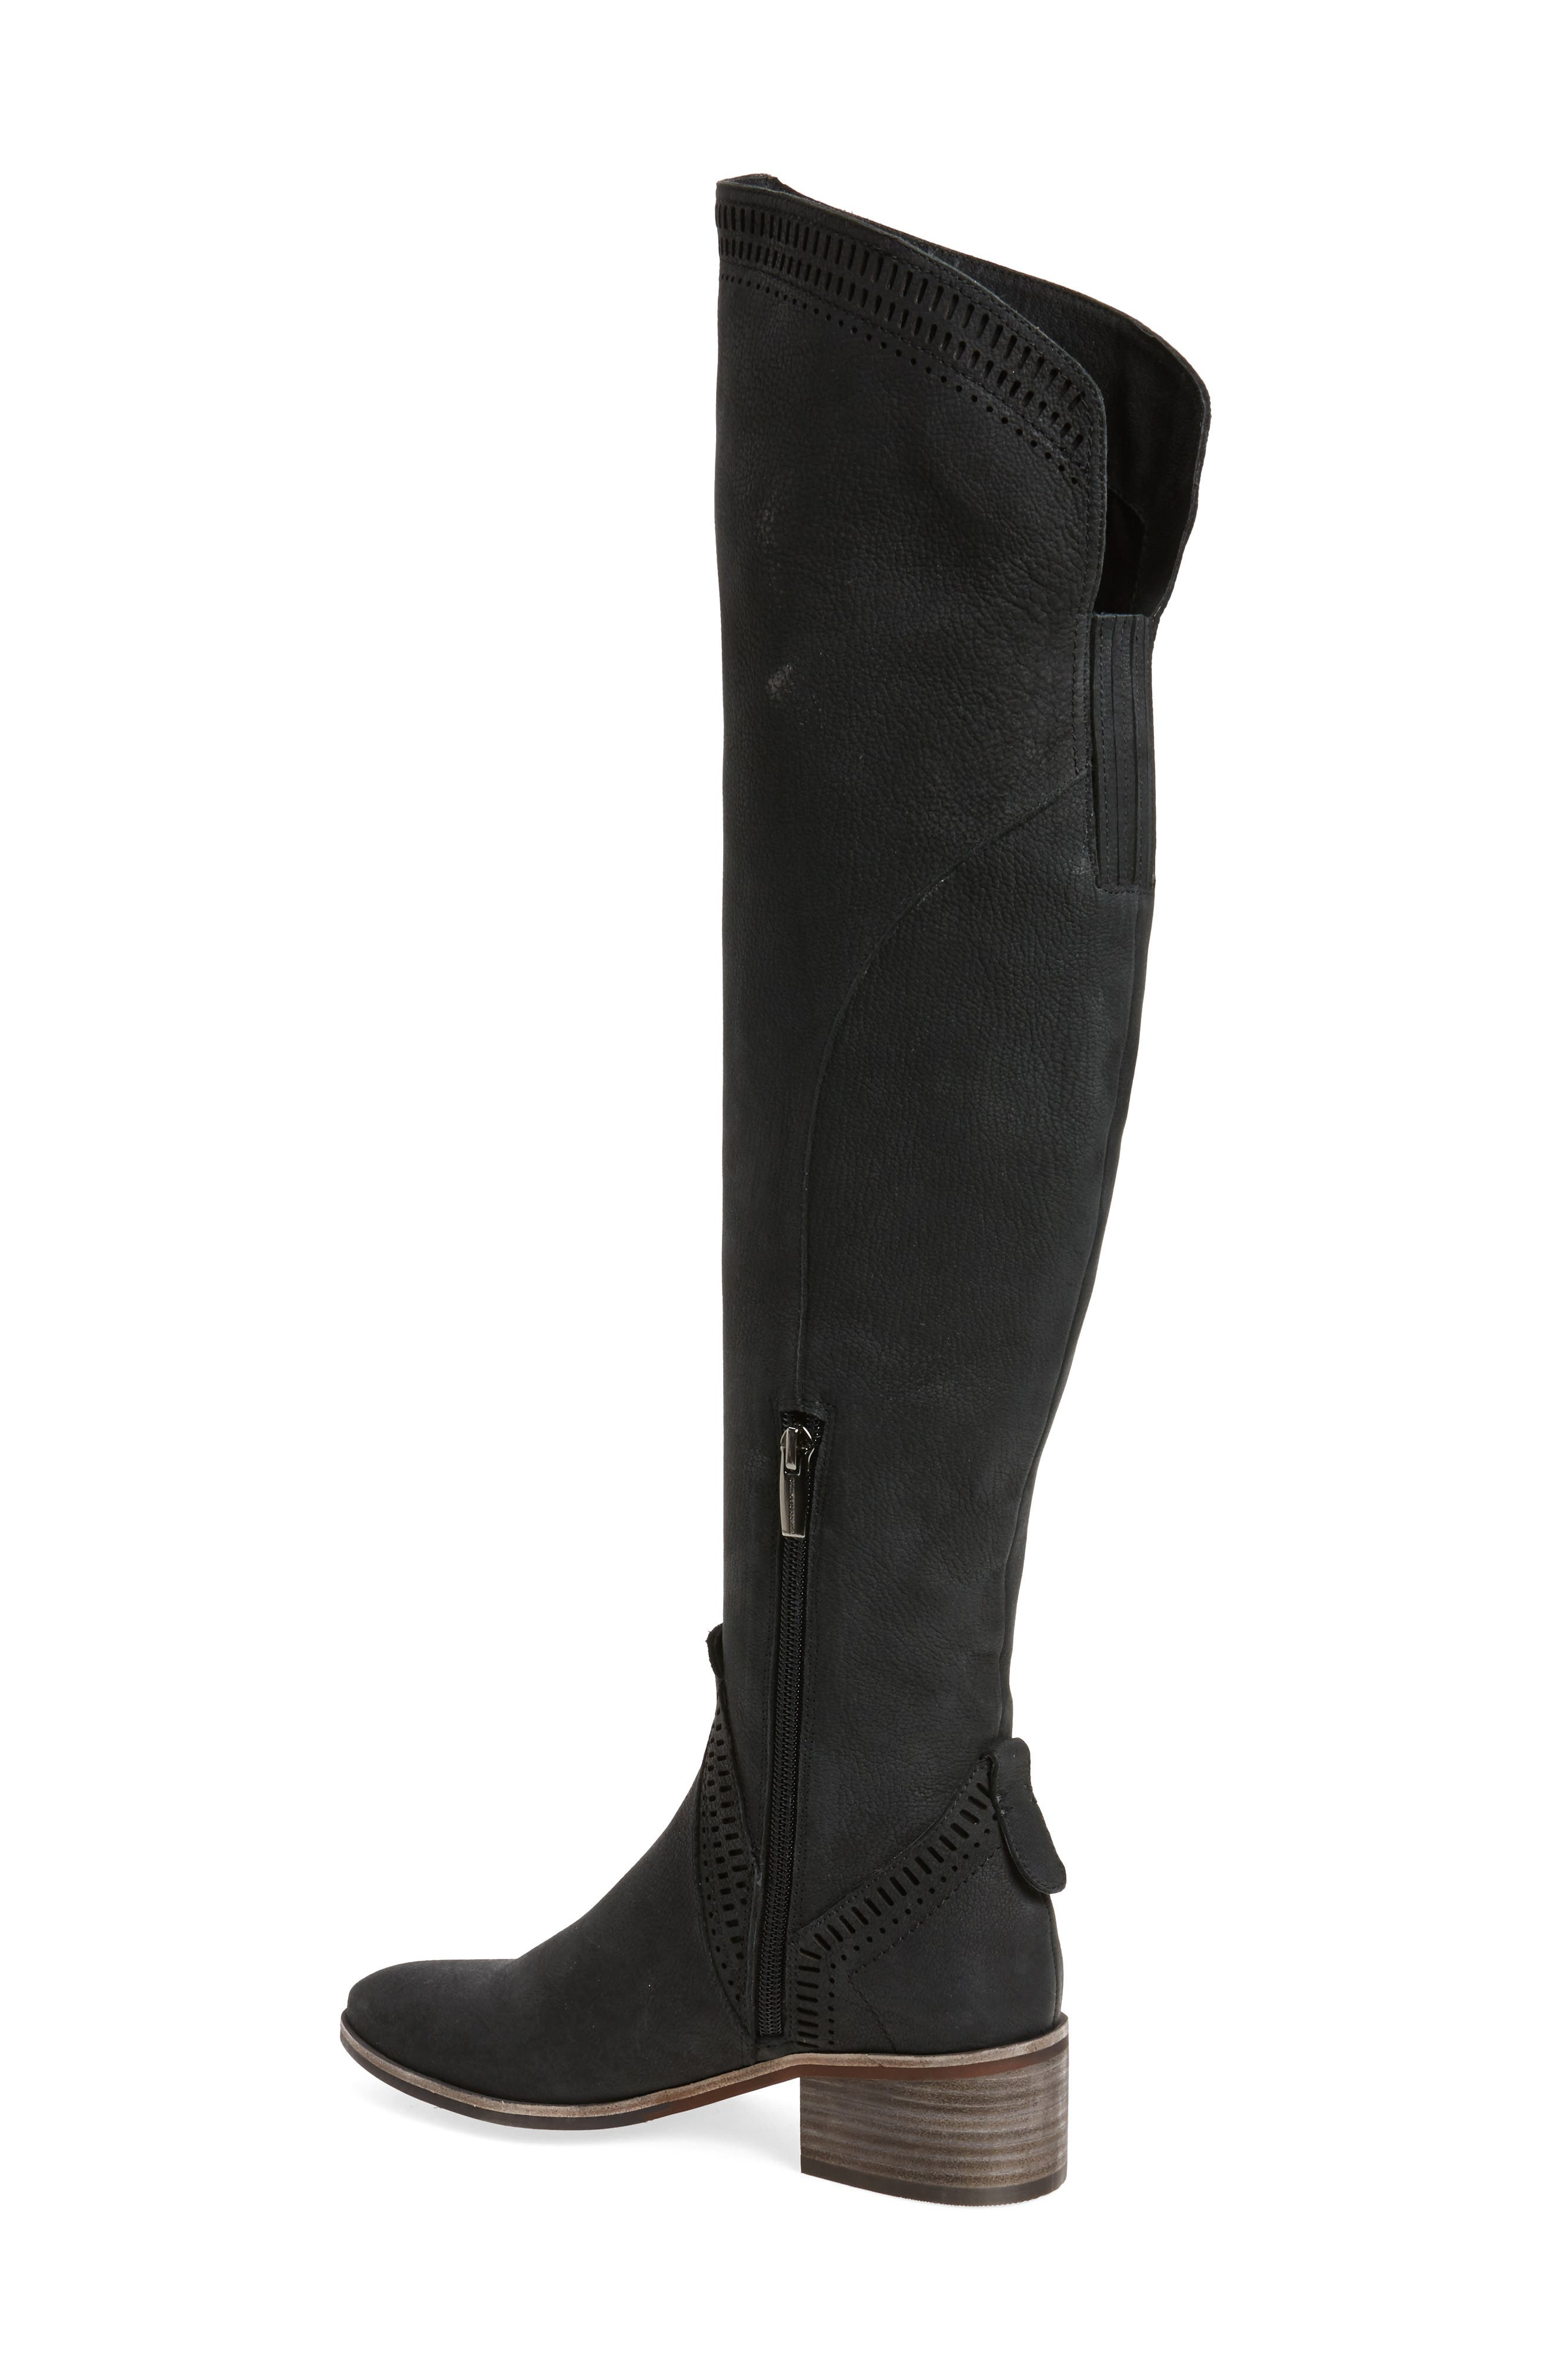 Karinda Over the Knee Boot,                             Alternate thumbnail 2, color,                             Black Leather Wide Calf